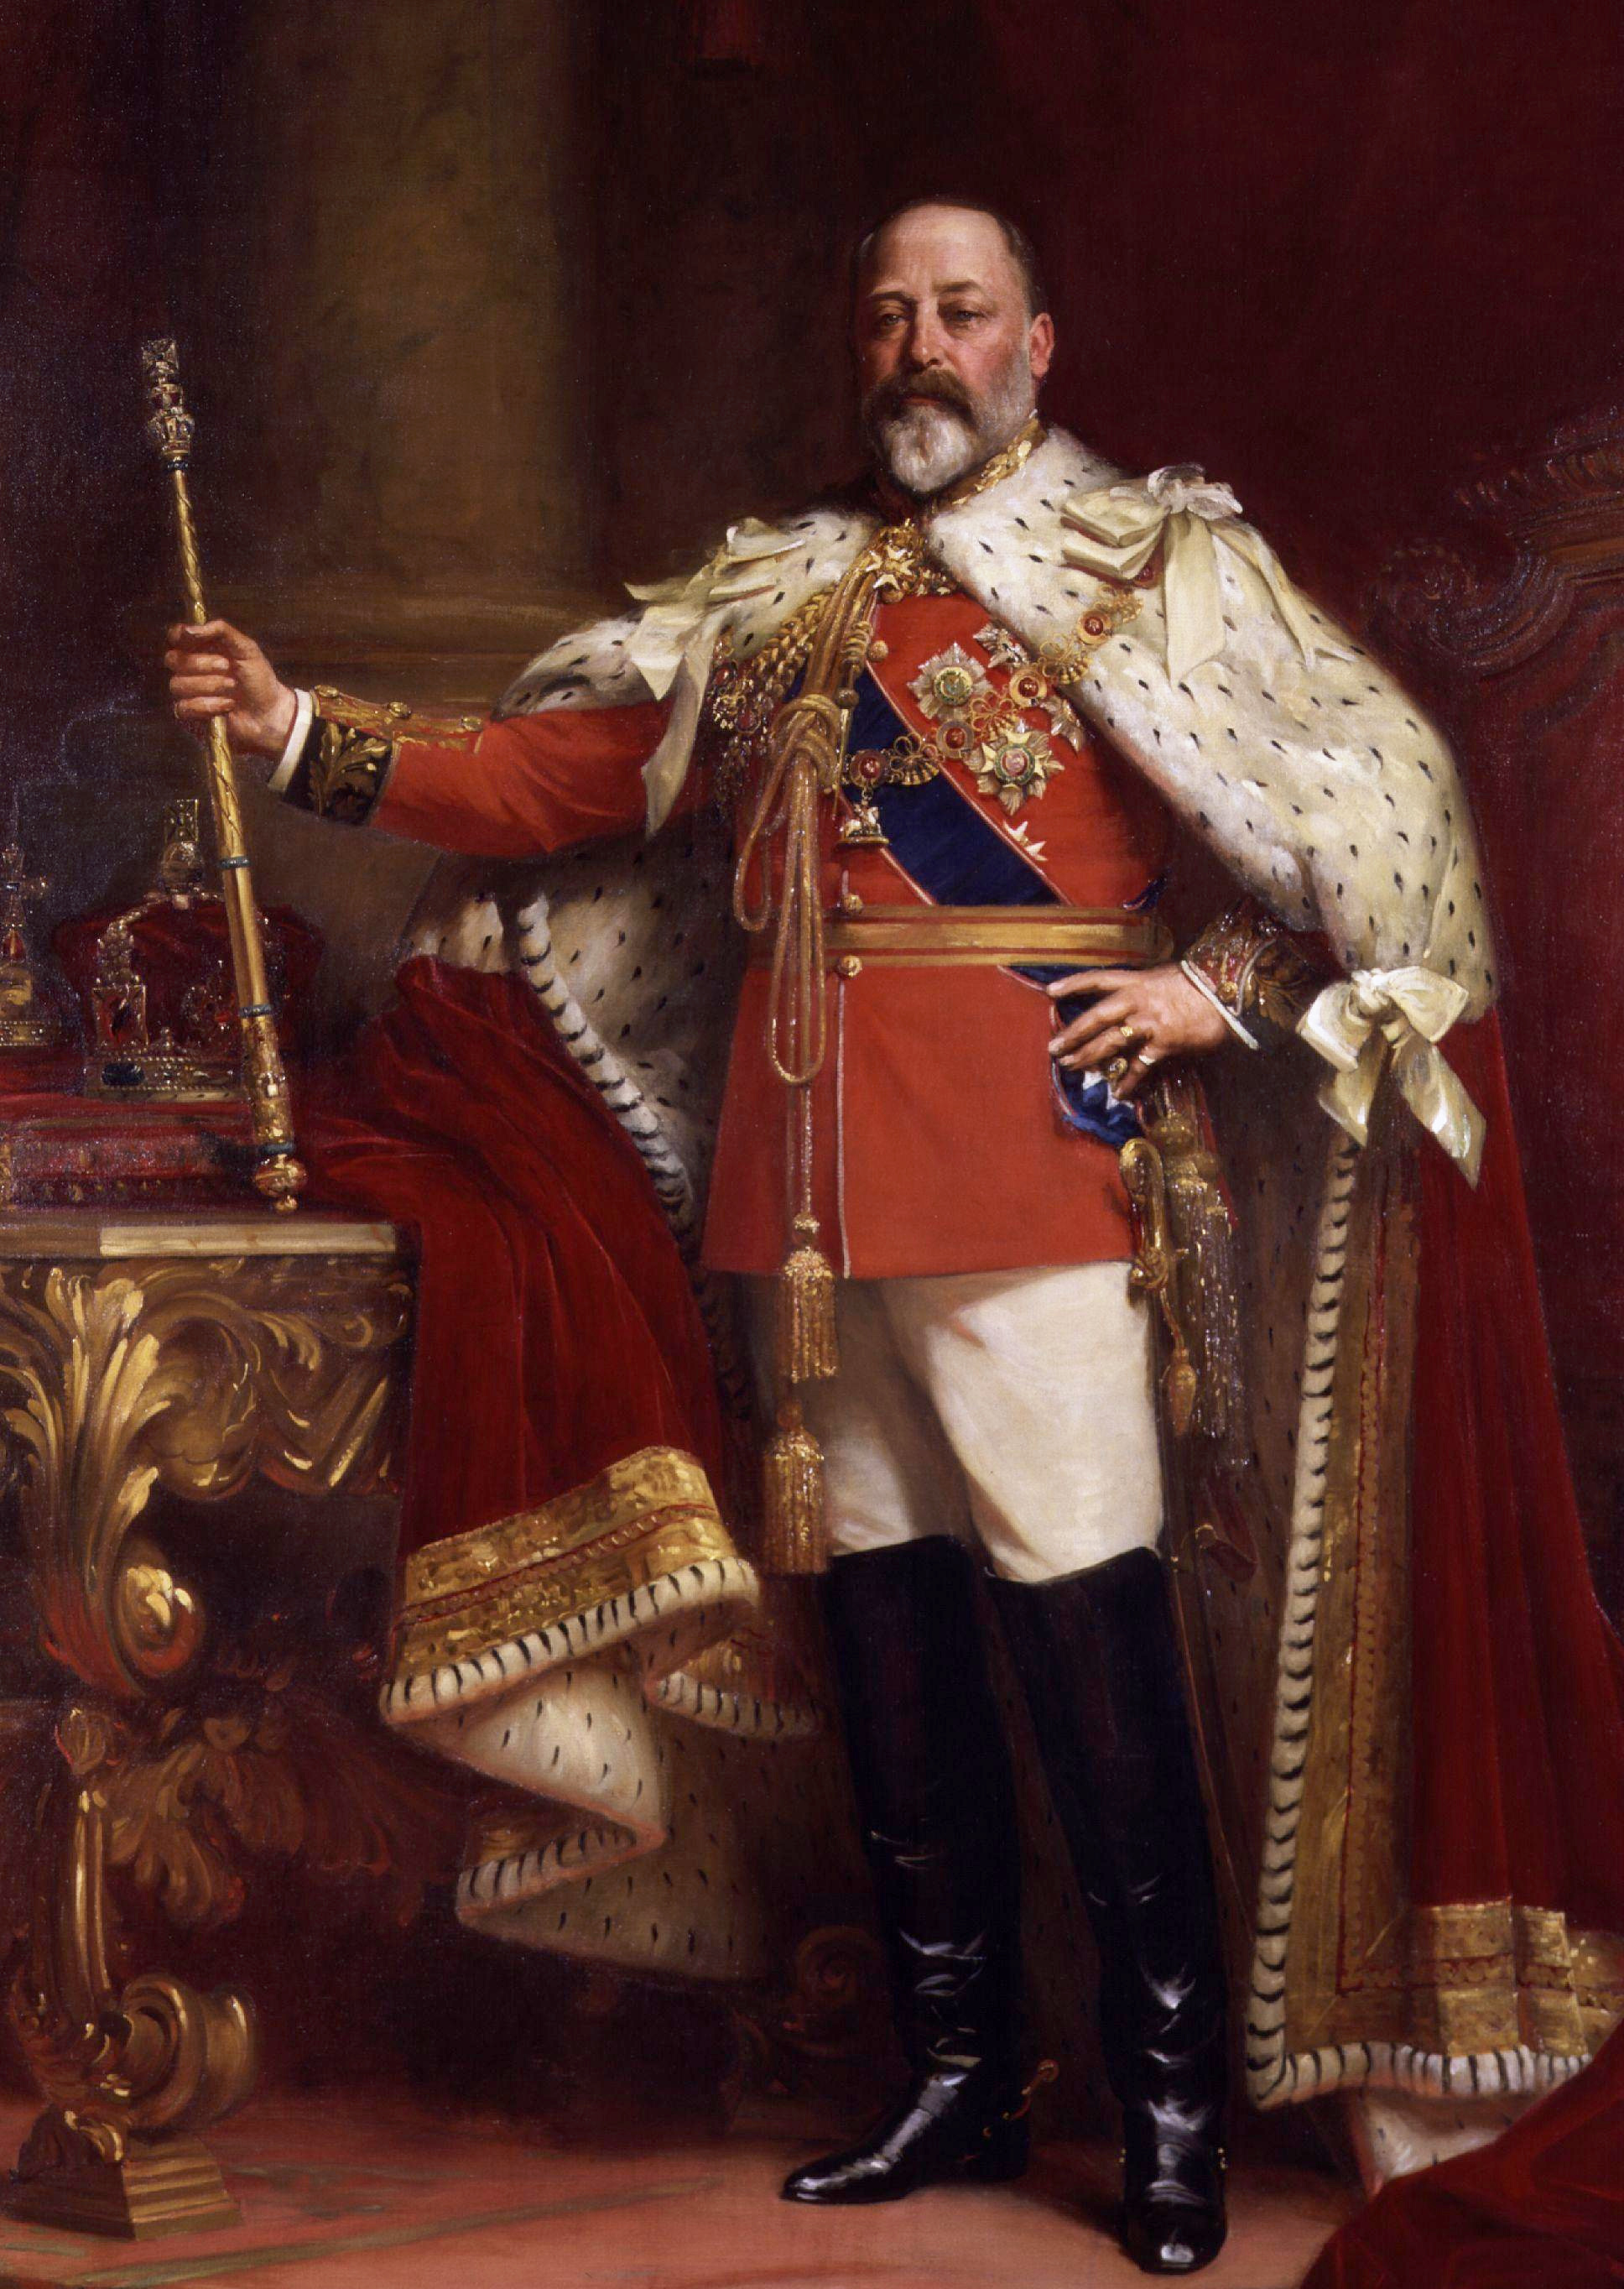 King Edward VII in his coronation robes.